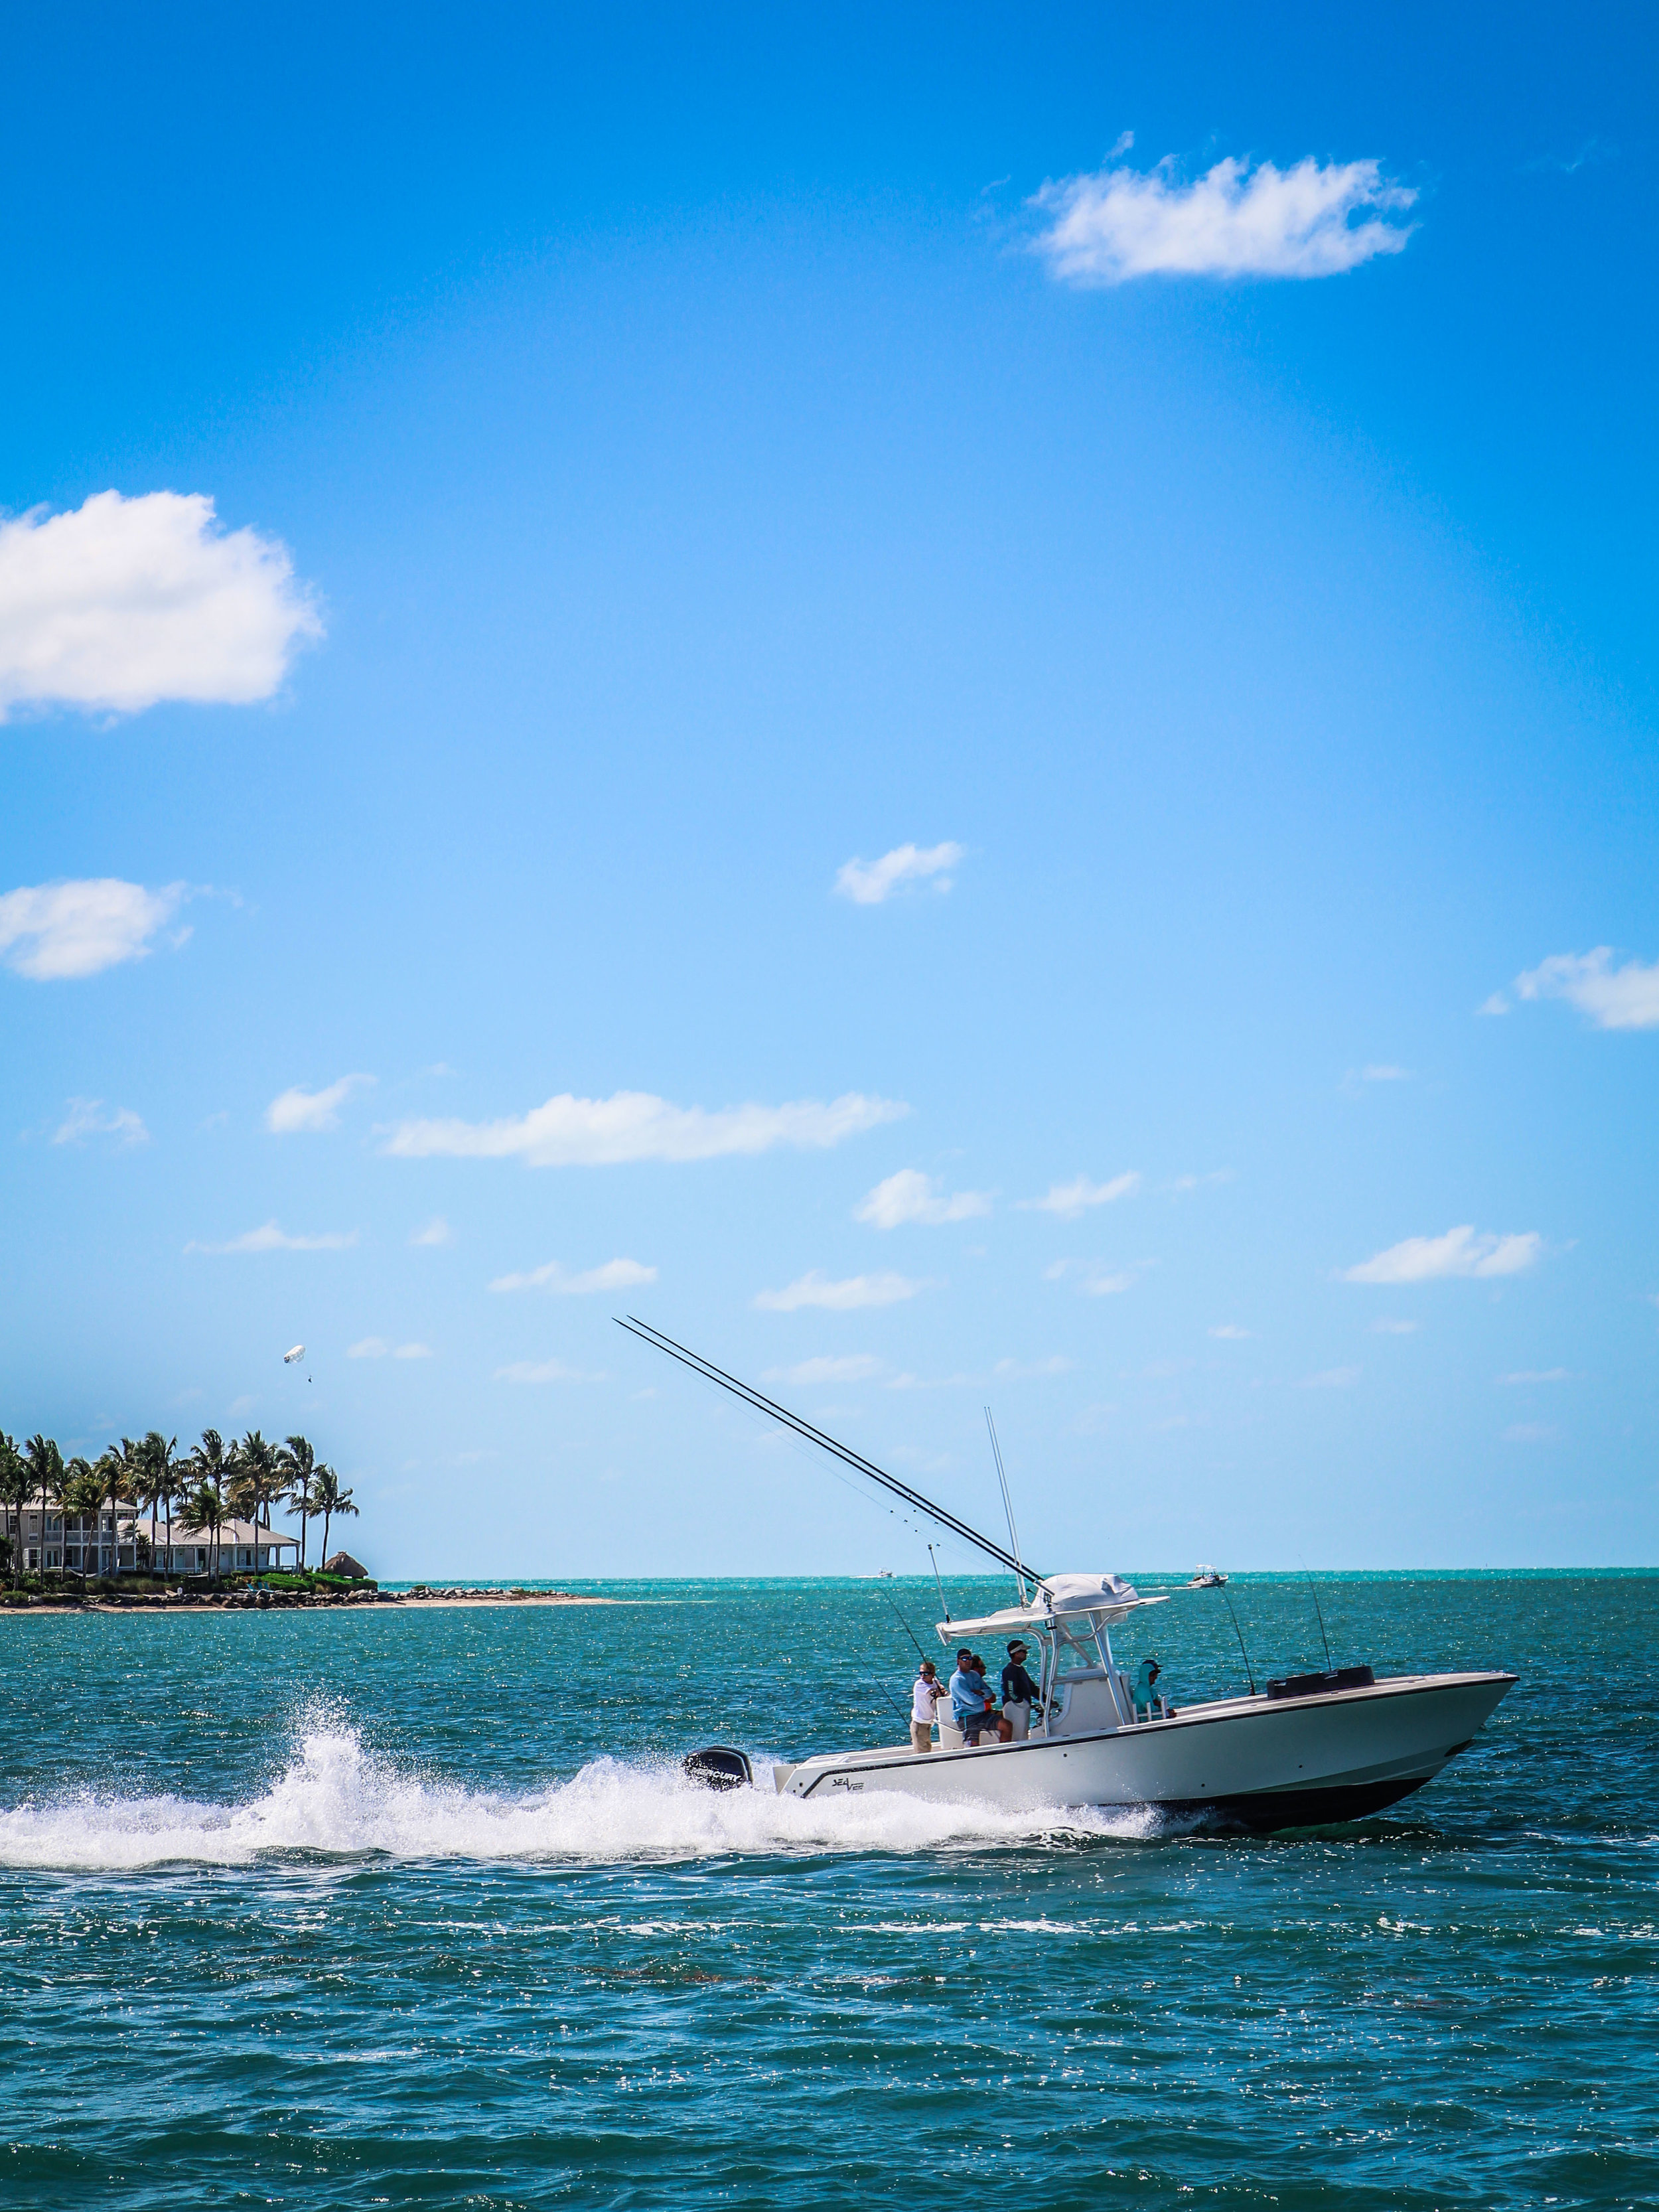 Florida_keys-_Key_west_To_do_reizen_met_kinderen-16.jpg